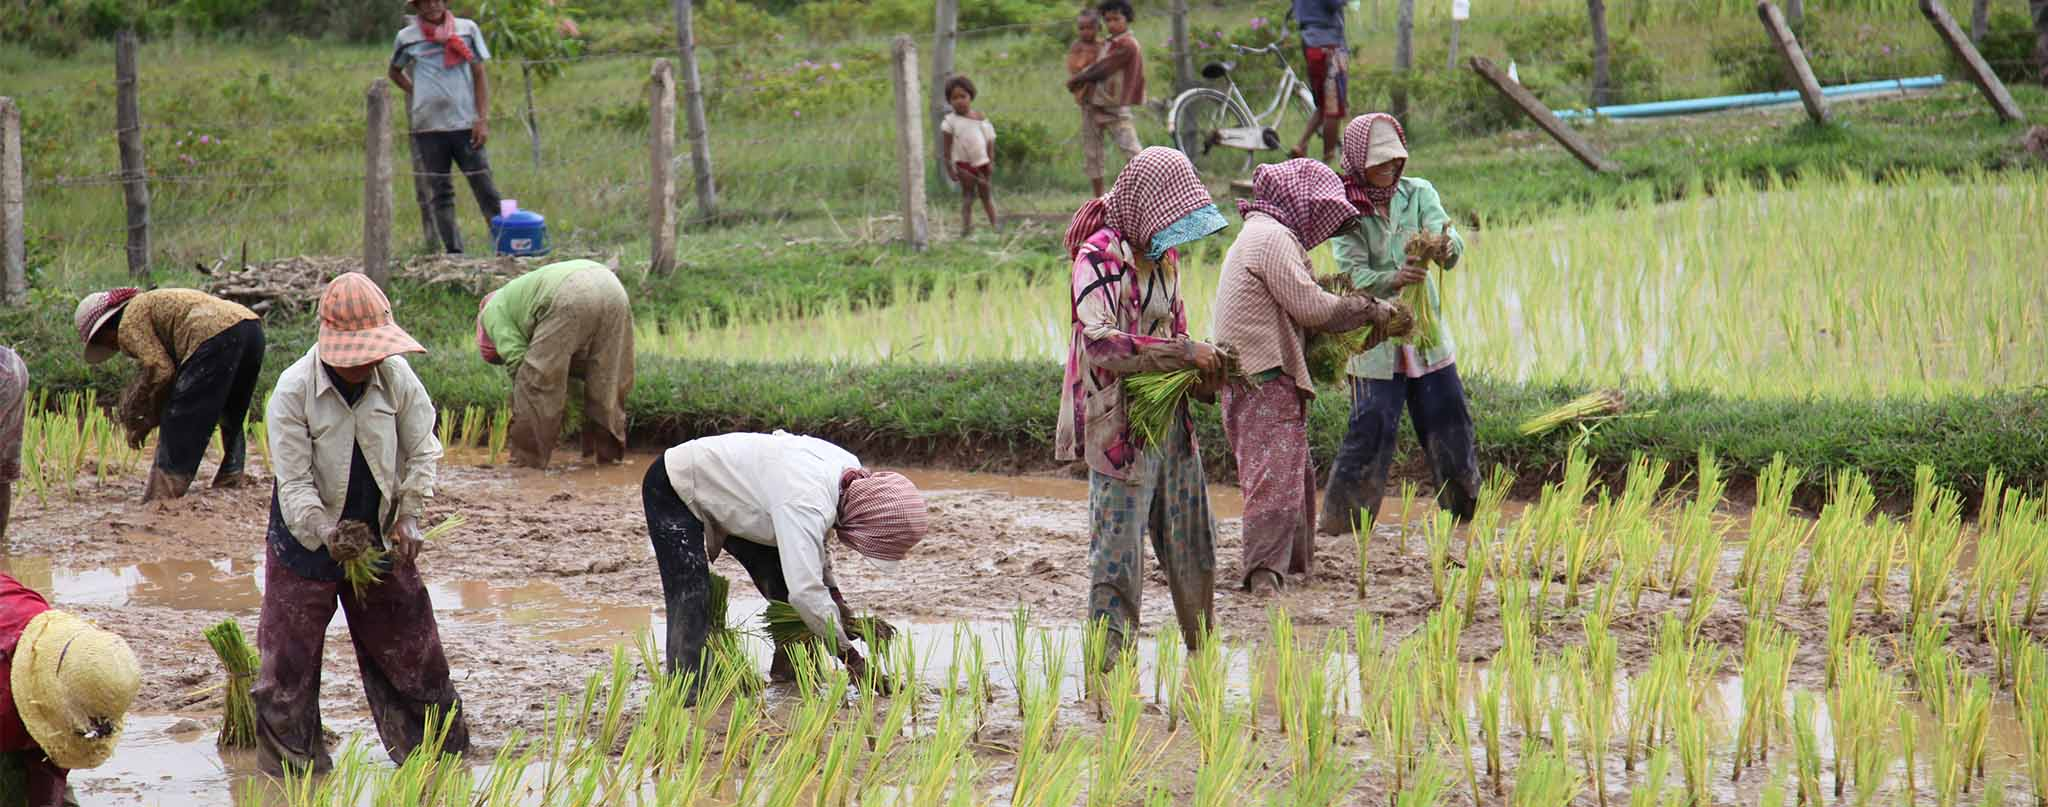 rice fields salt trip tour kep cambodia Excursions Activities